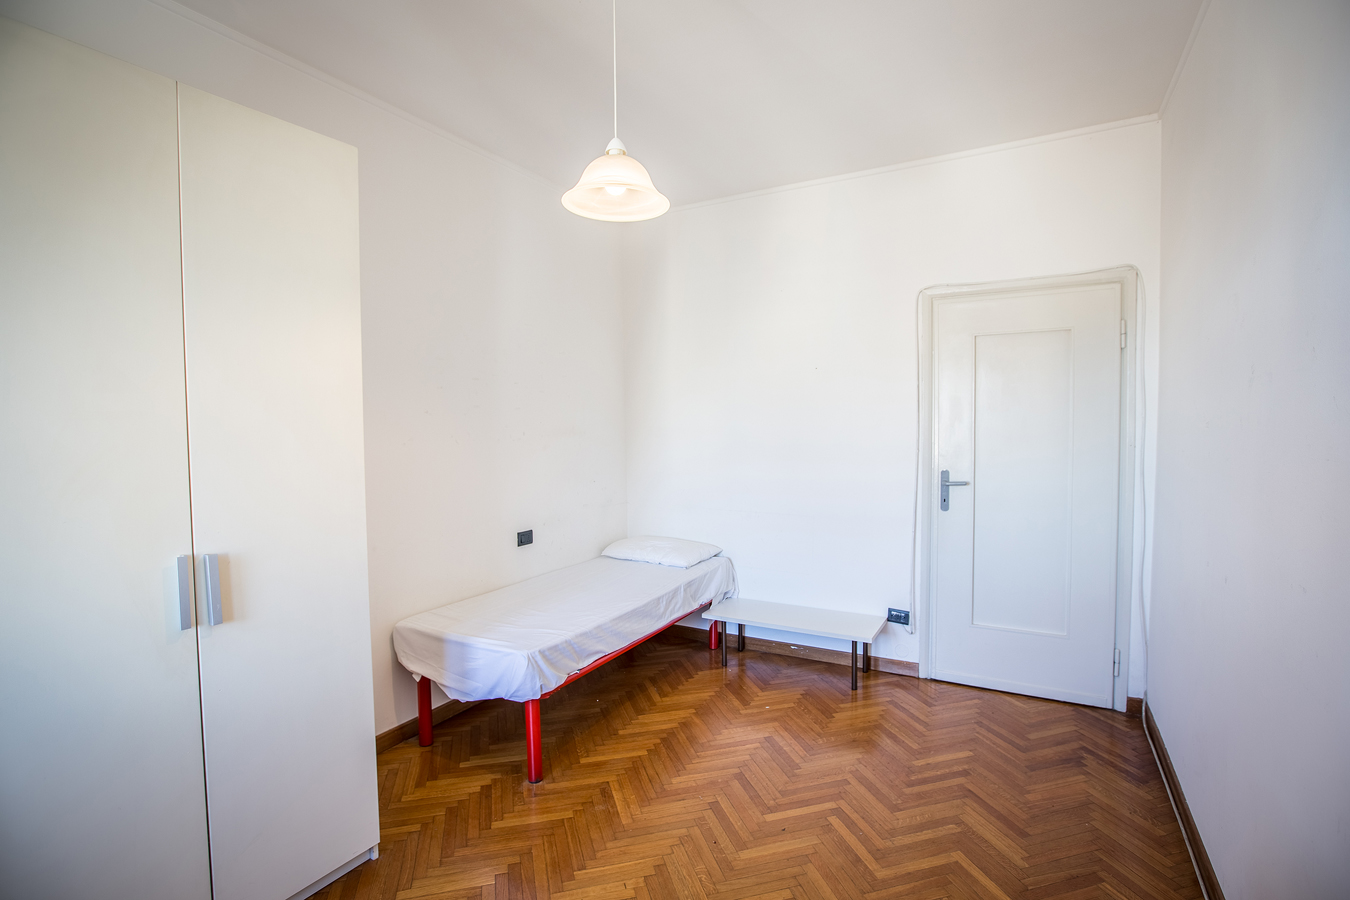 Student Accomodation for rent in single room in Viale Monte Ceneri, 74, in Milano, Italy